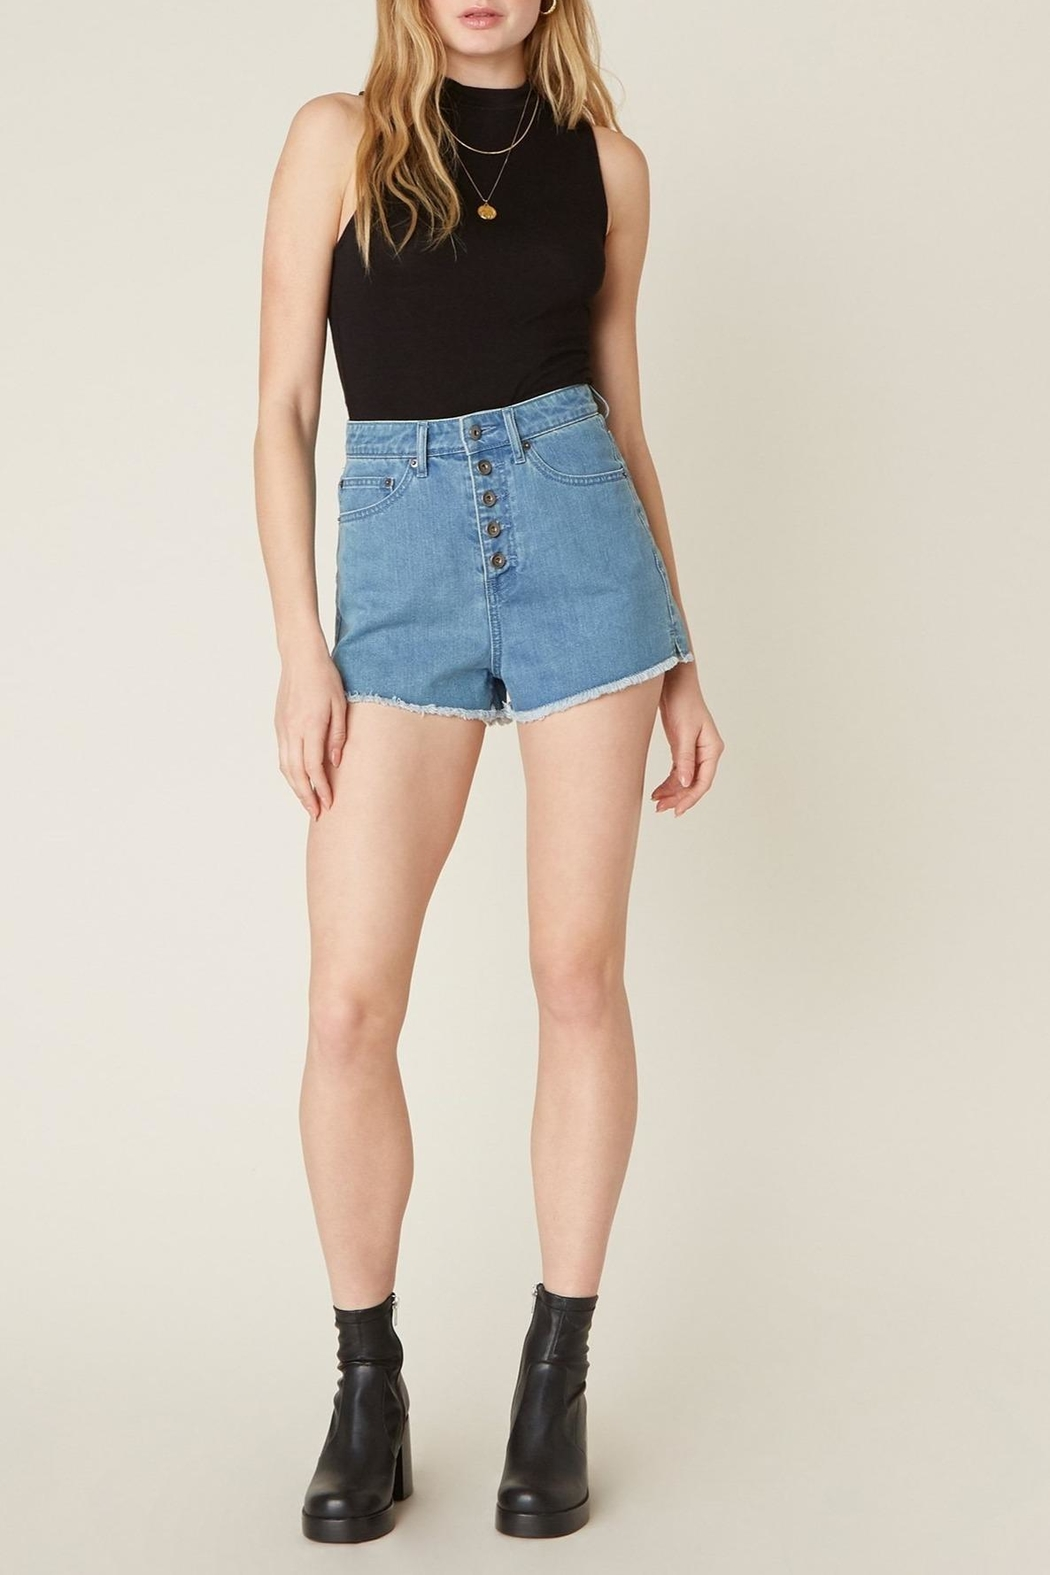 Jack by BB Dakota Down-To-Business Denim Short - Side Cropped Image